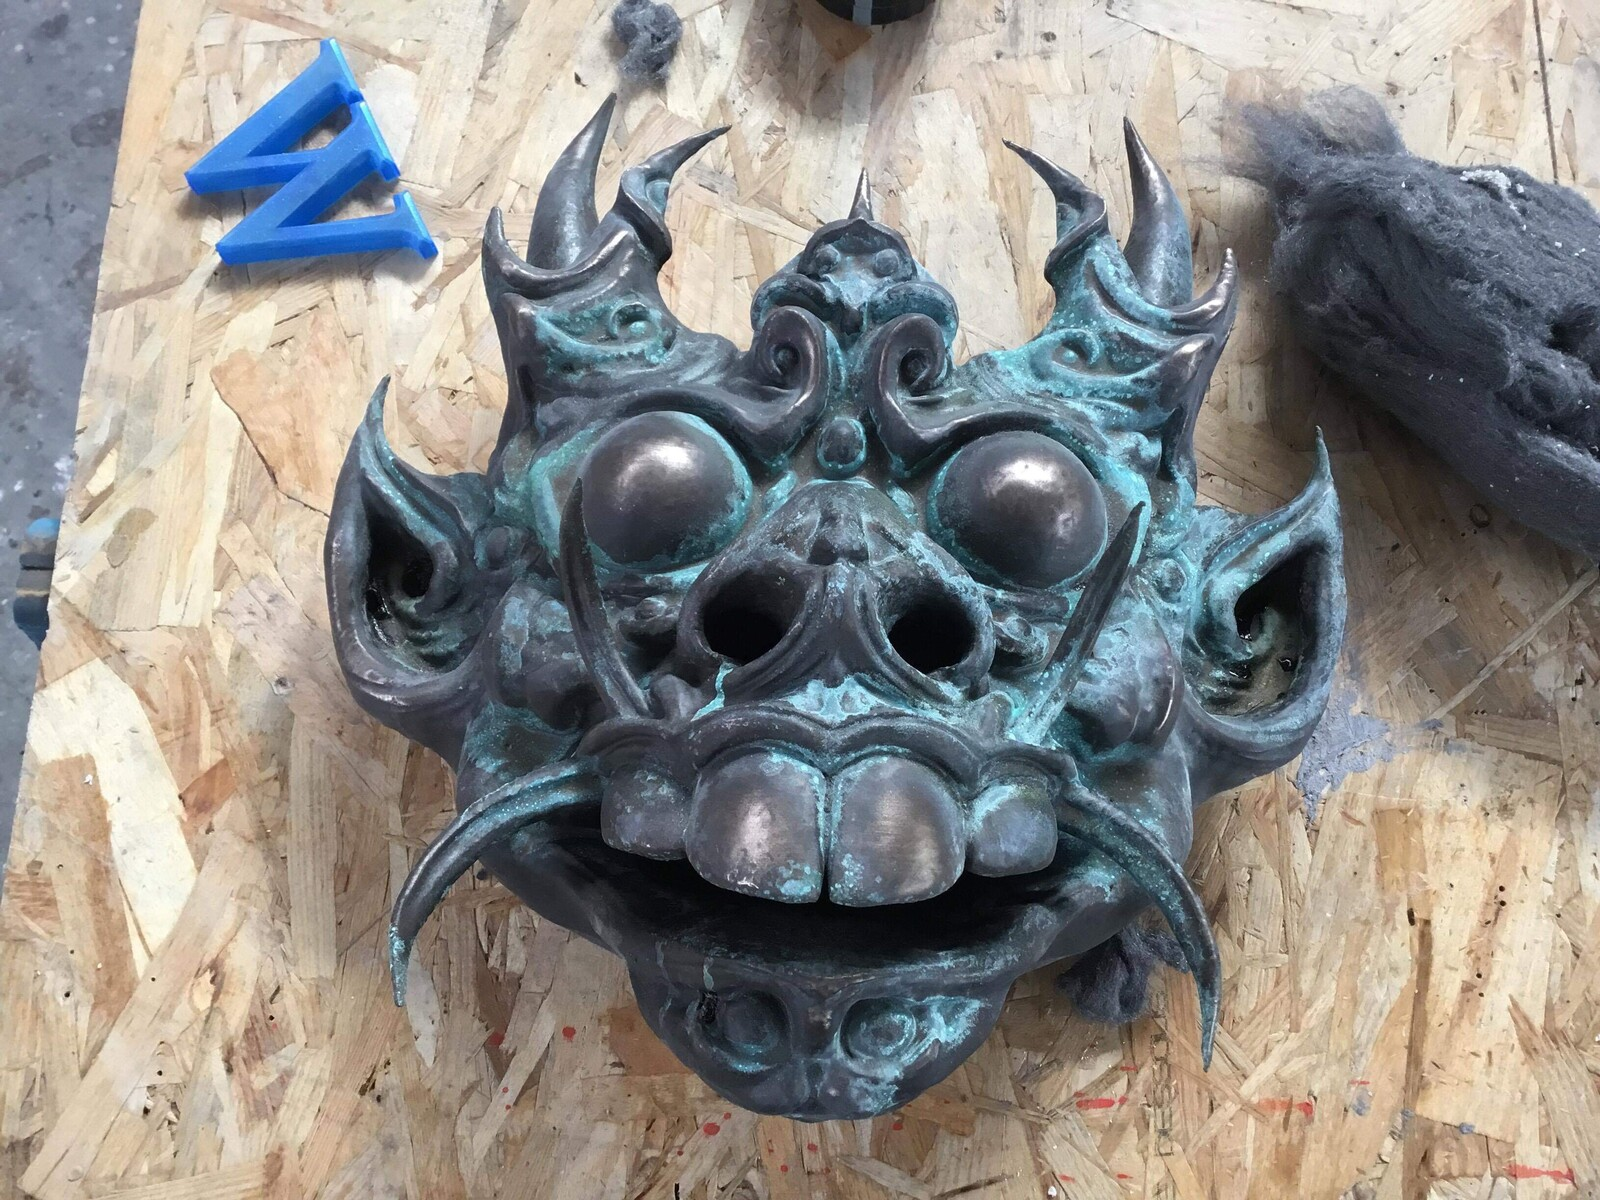 Bronze Mask done in collaboration with Frederic Wajeman at FX Deco studios Paris